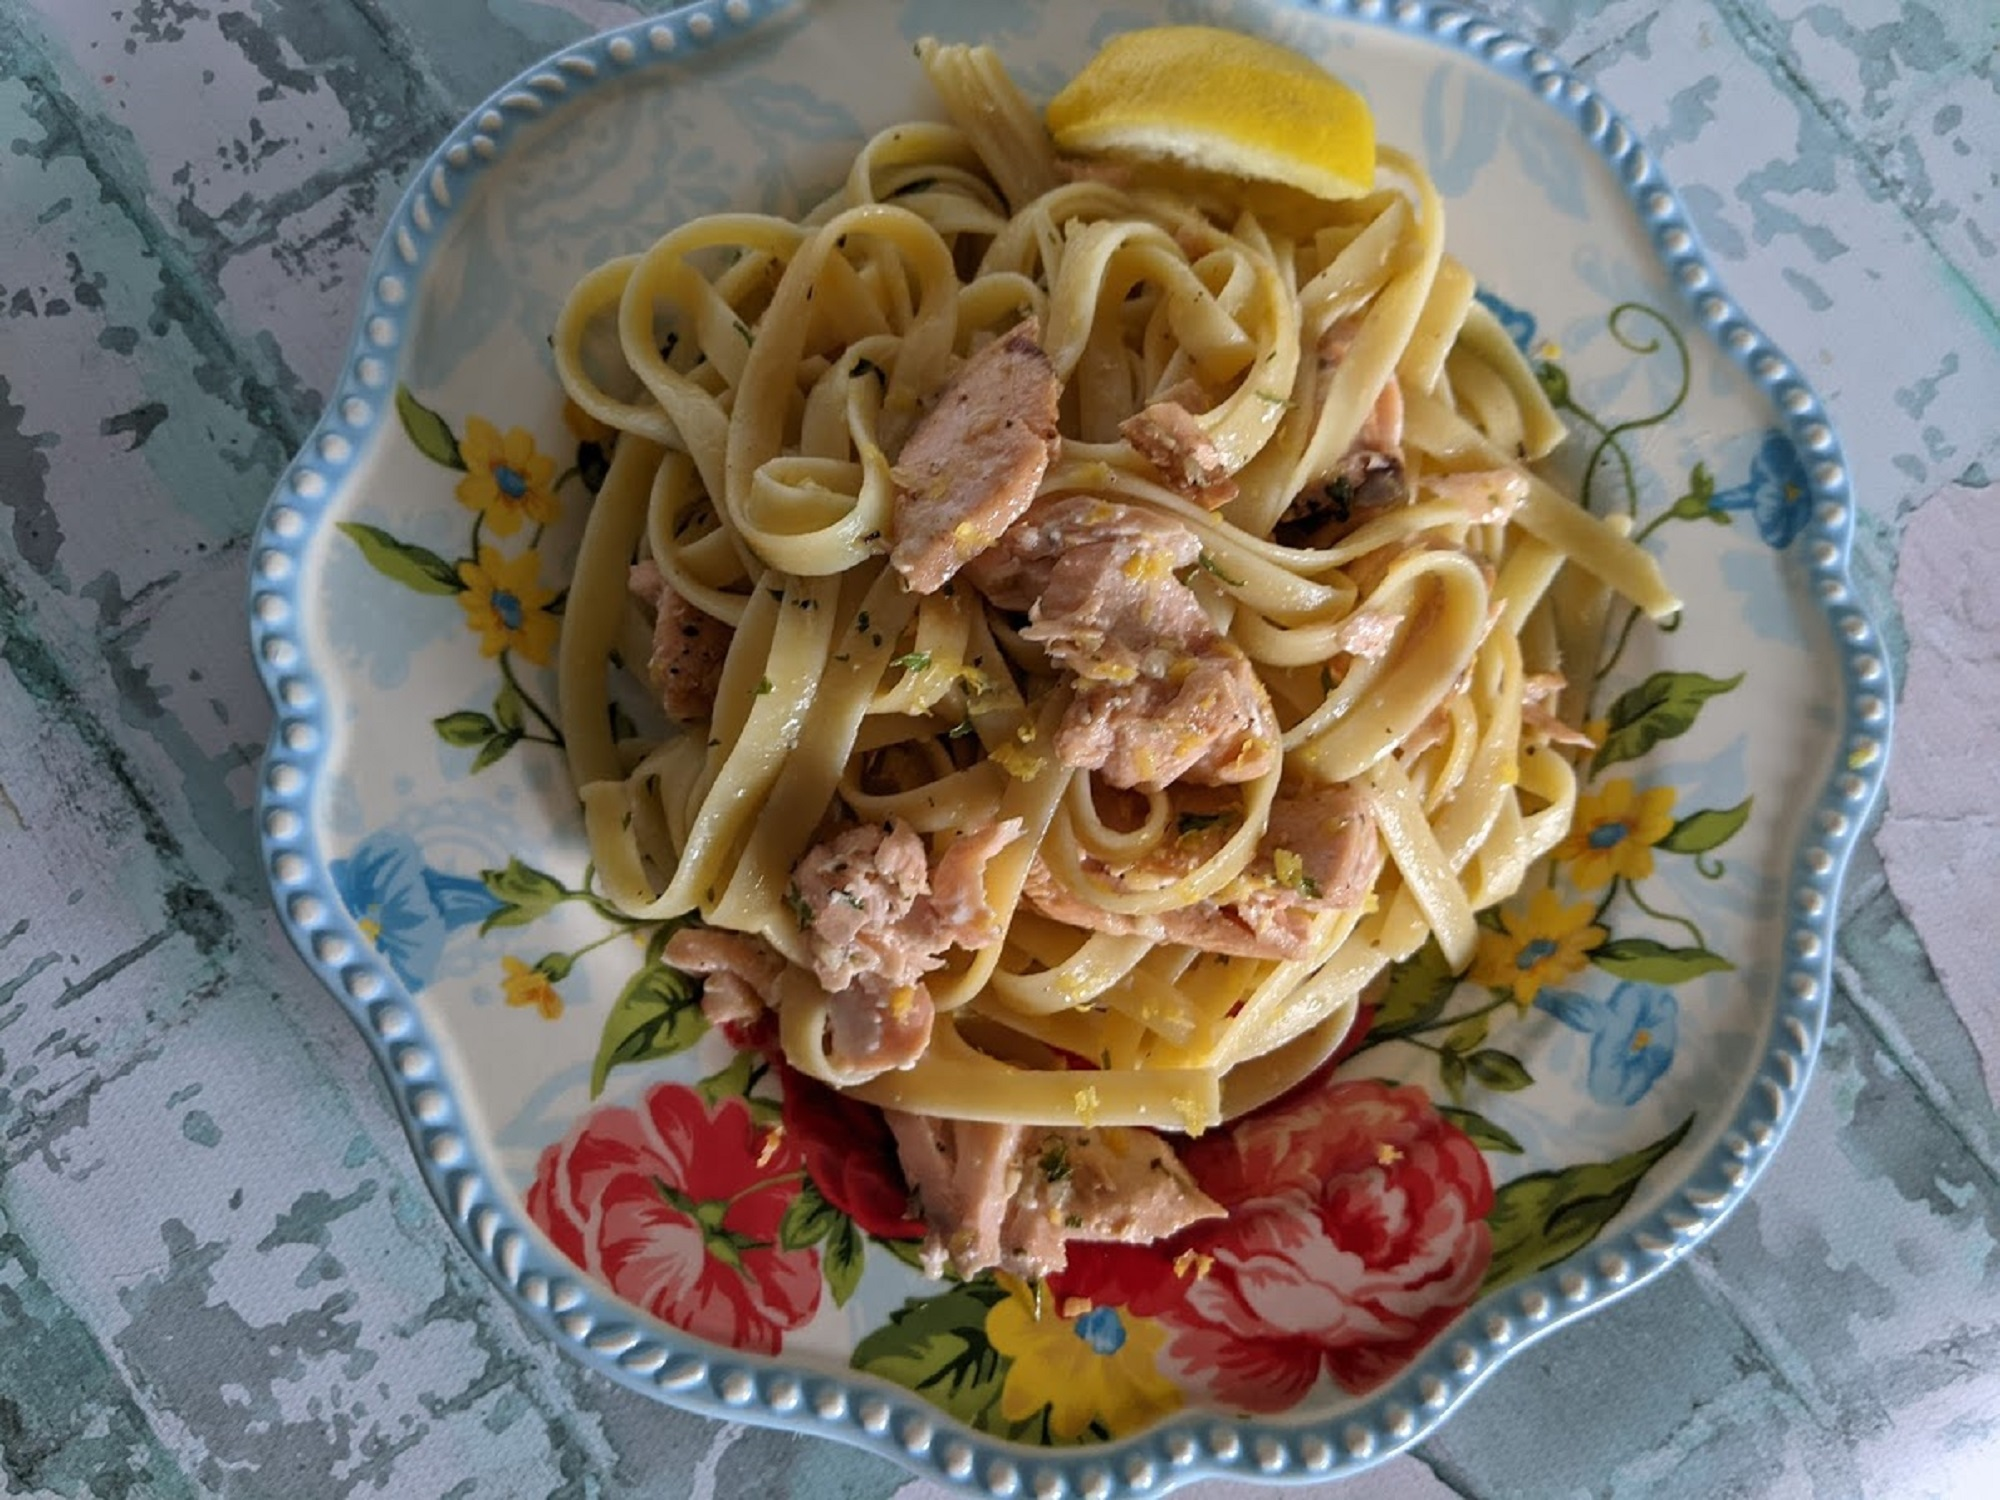 Baked Lemon-Butter Salmon with Pasta